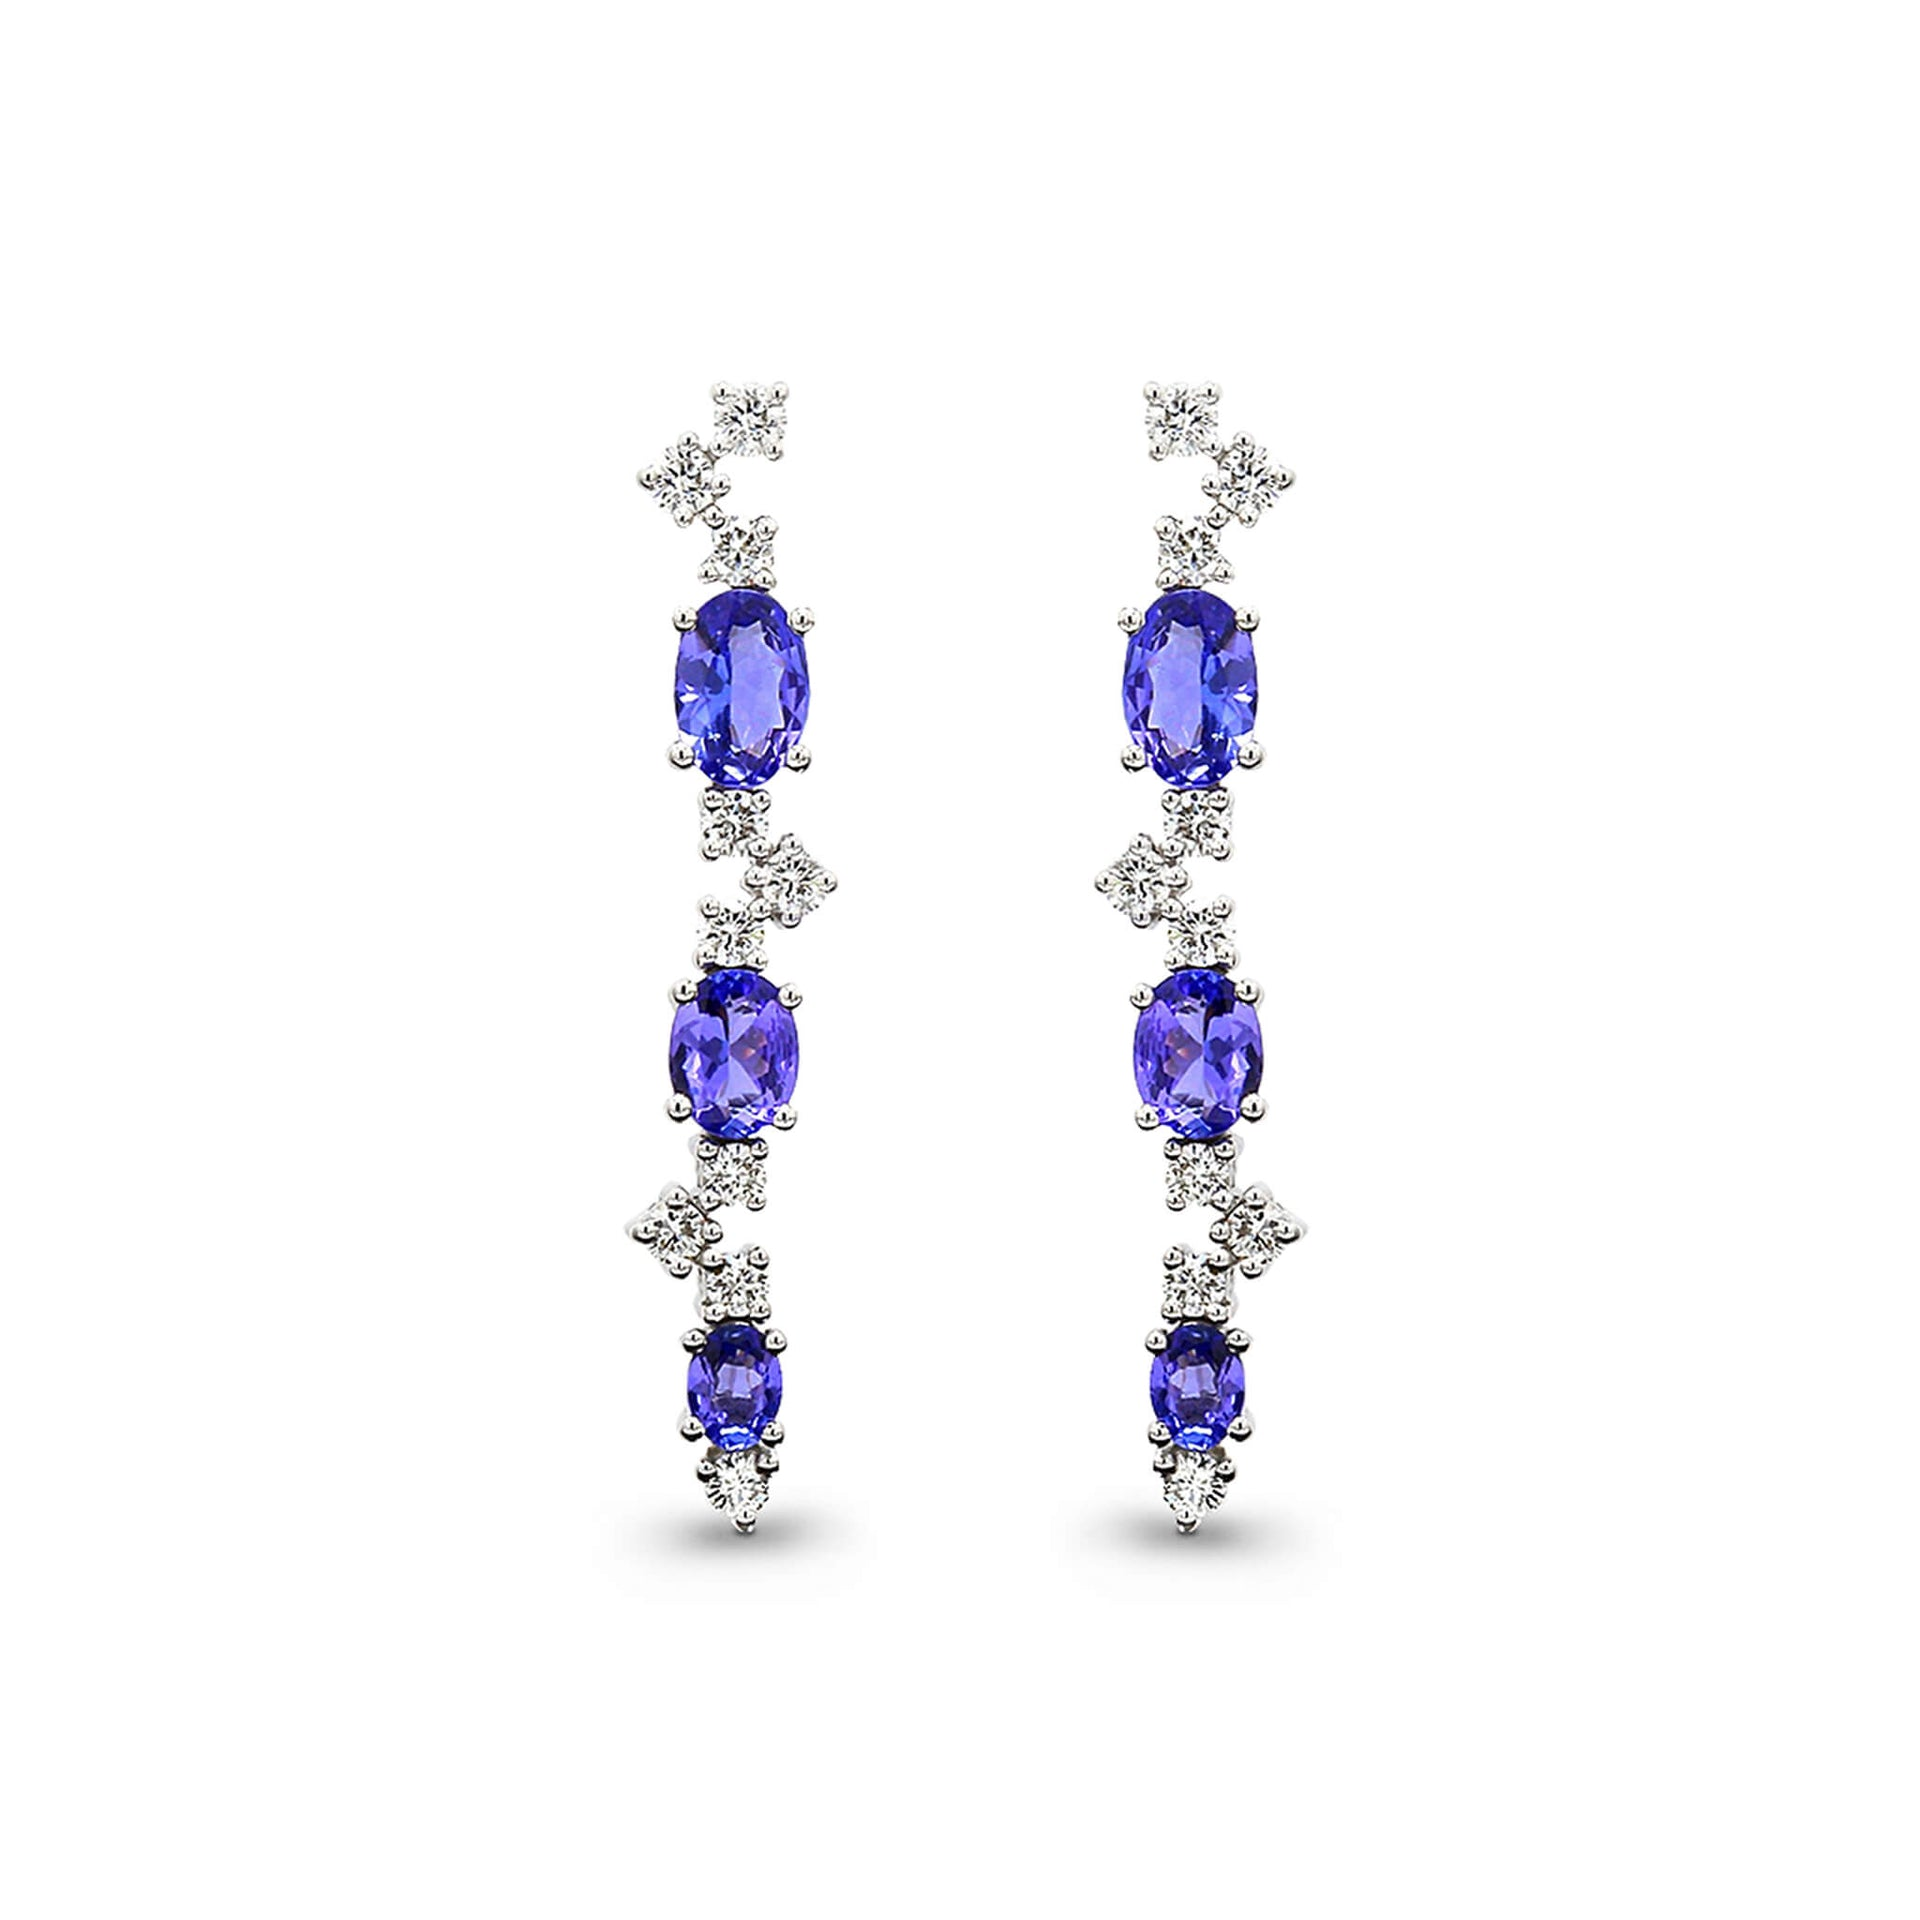 1.76 Carat Oval Cut Tanzanite and Round Brilliant Cut Diamond Drop Earrings in 18K White Gold Front View